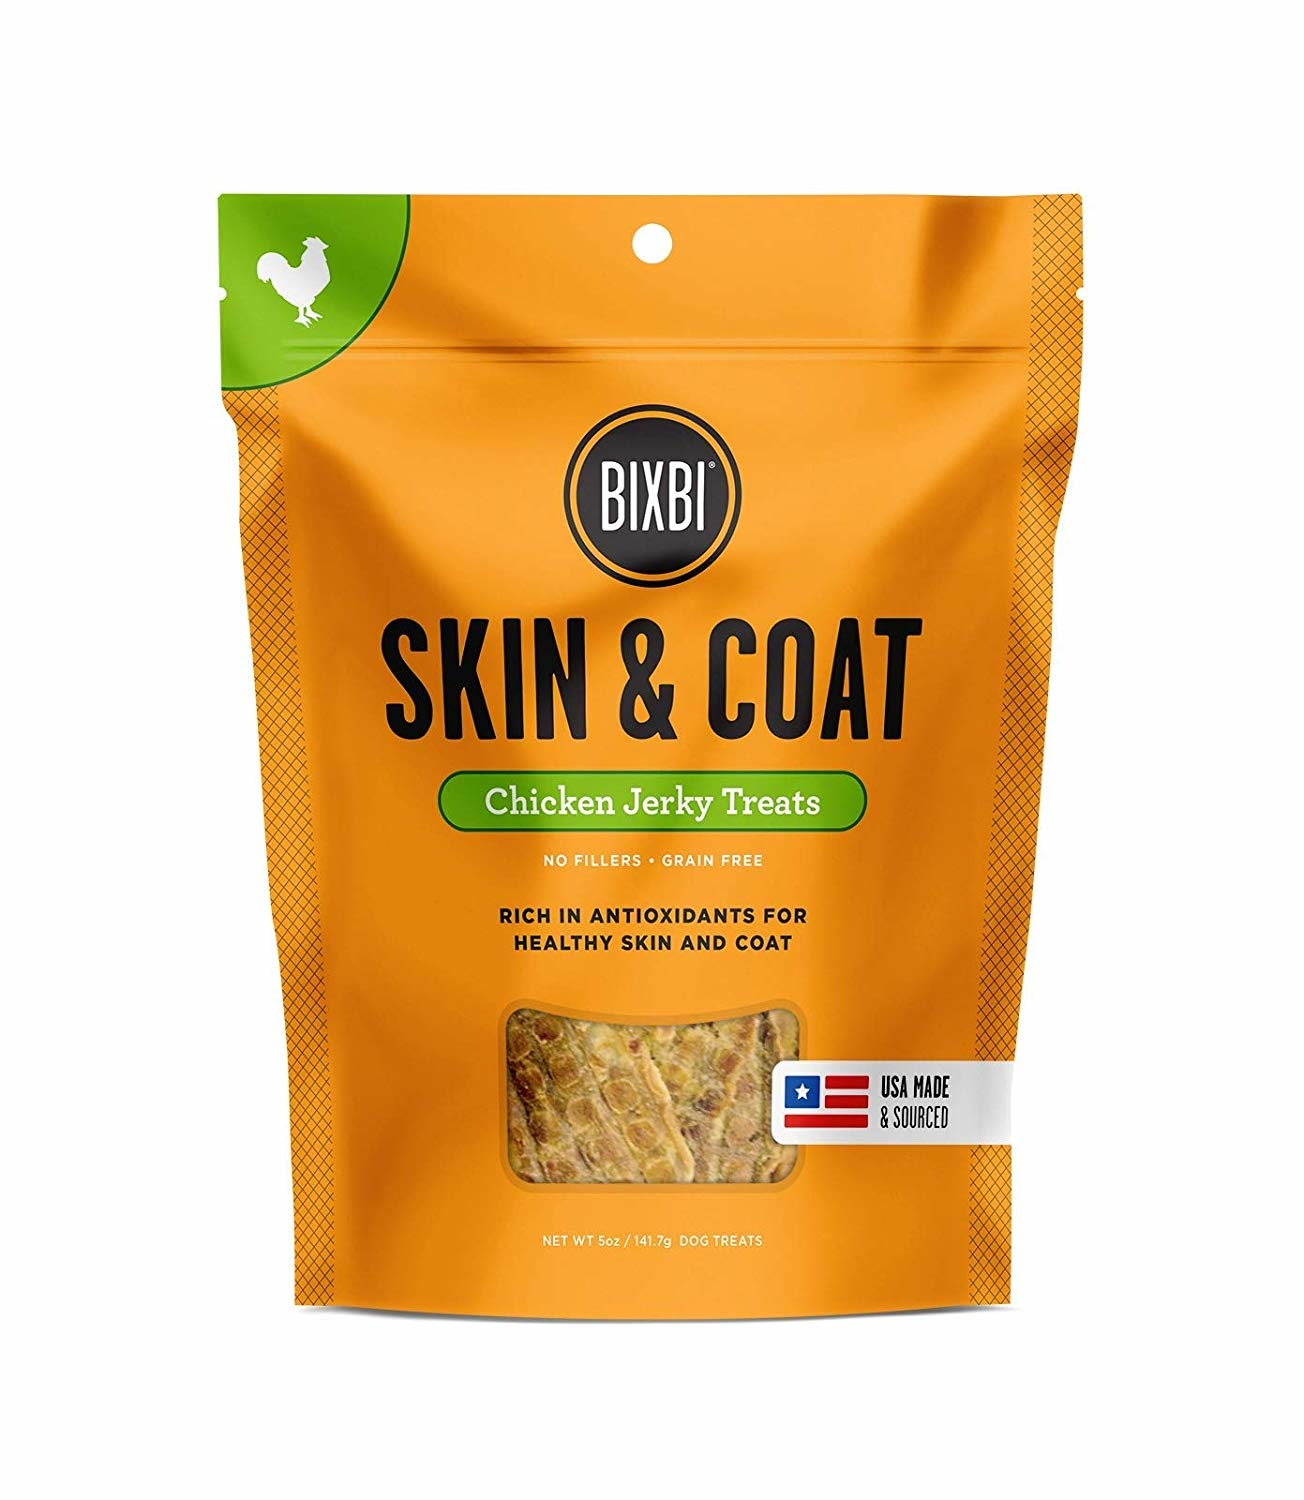 Bixbi Bixbi Skin & Coat Chicken Jerky 5oz